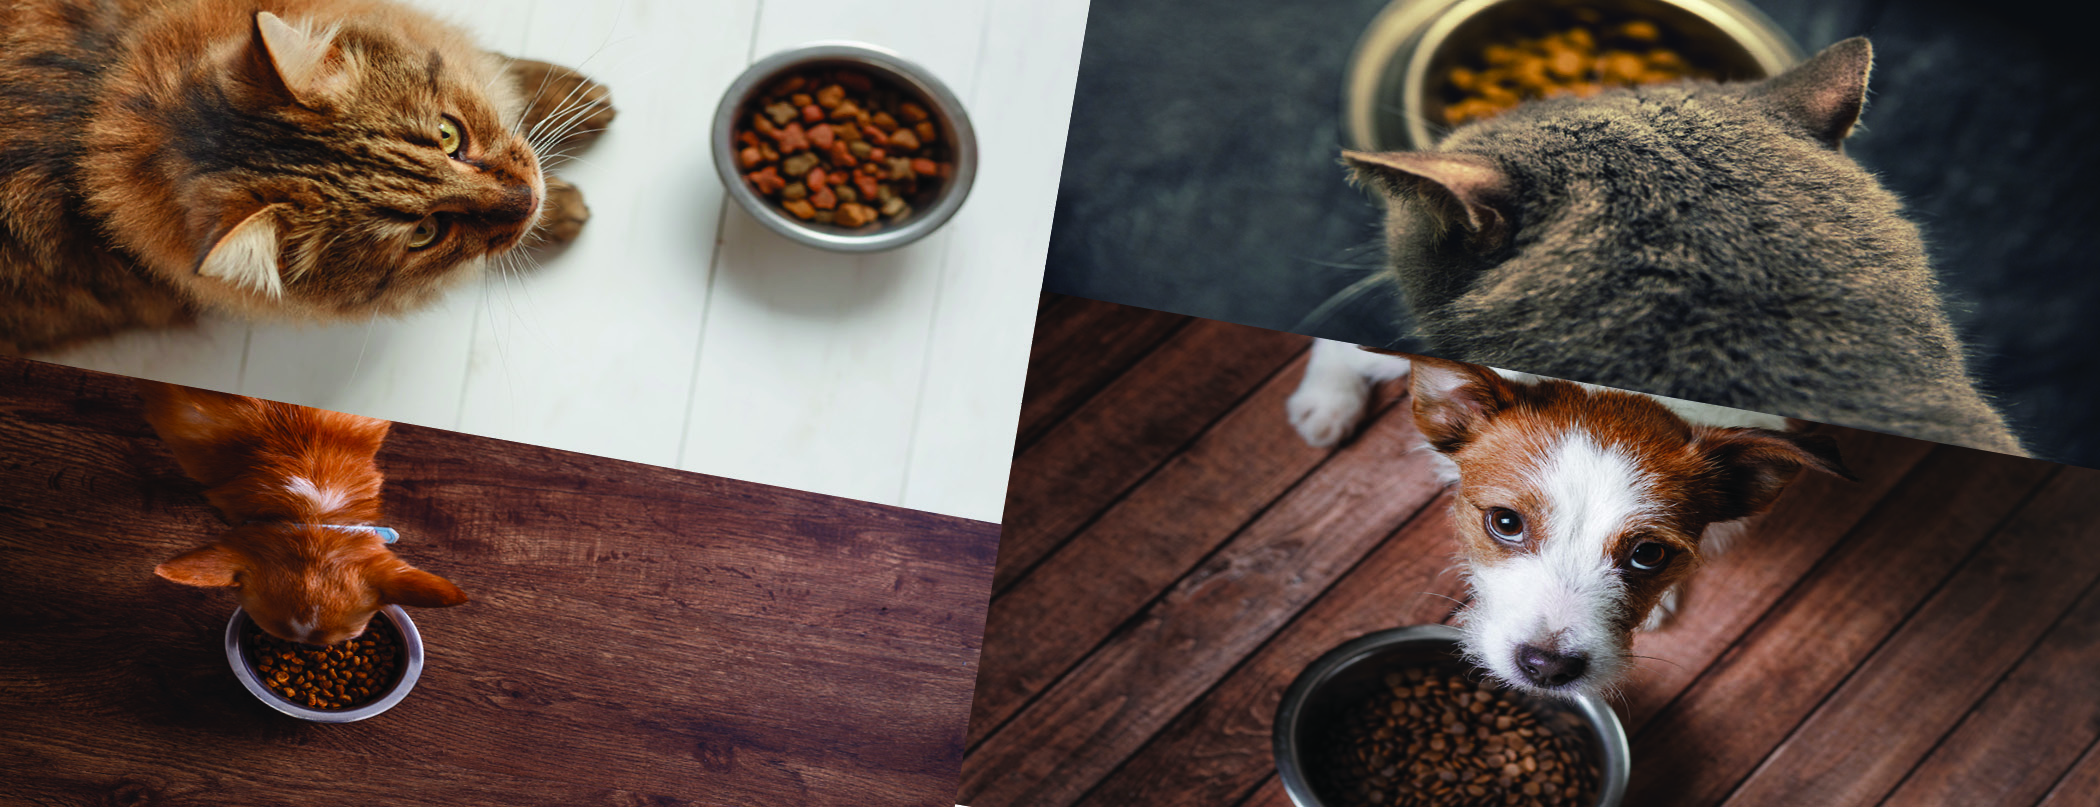 Pet Nutrition and Functional ingredients for pet food.jpg